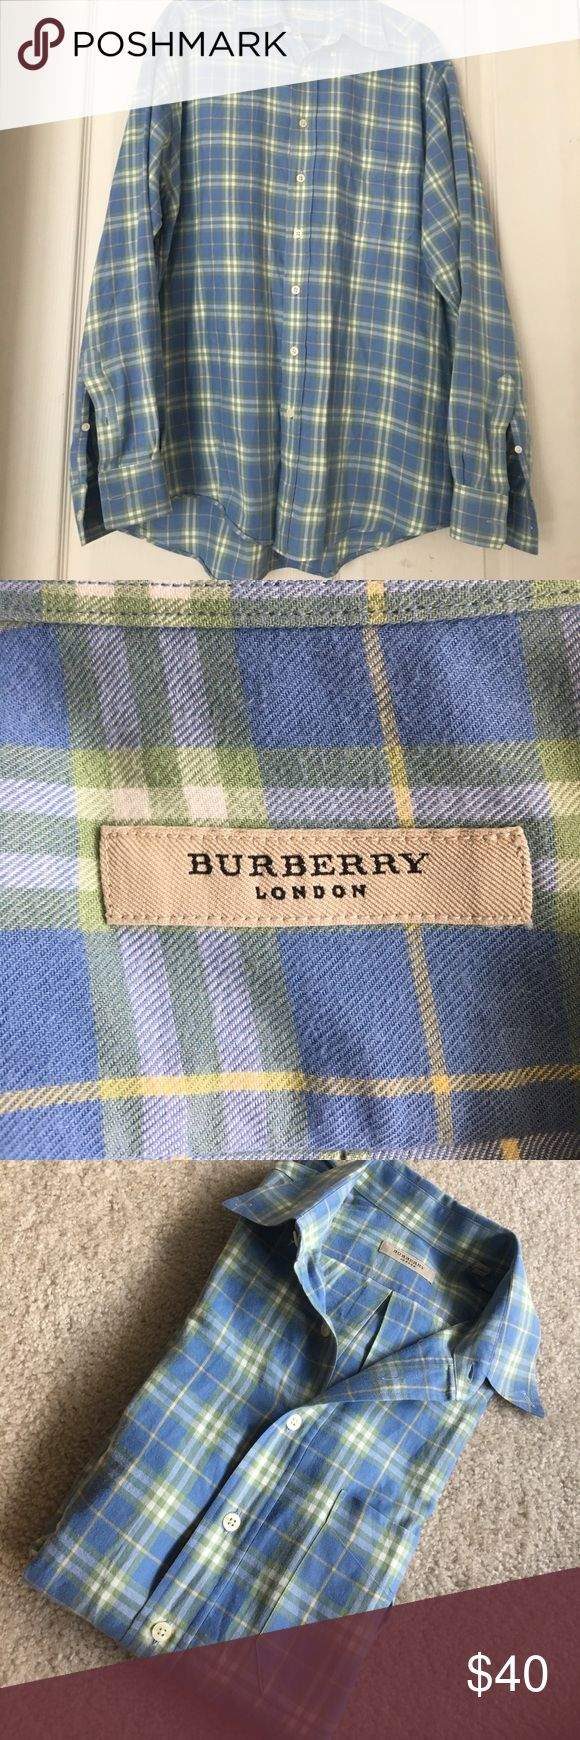 EUC Men's Burberry London button down  size M Used but in excellent shape no holes, rips or stain, pet free and smoke free home... very nice and quality wear for a very affordable price ♥️♥️♥️ Burberry Shirts Casual Button Down Shirts